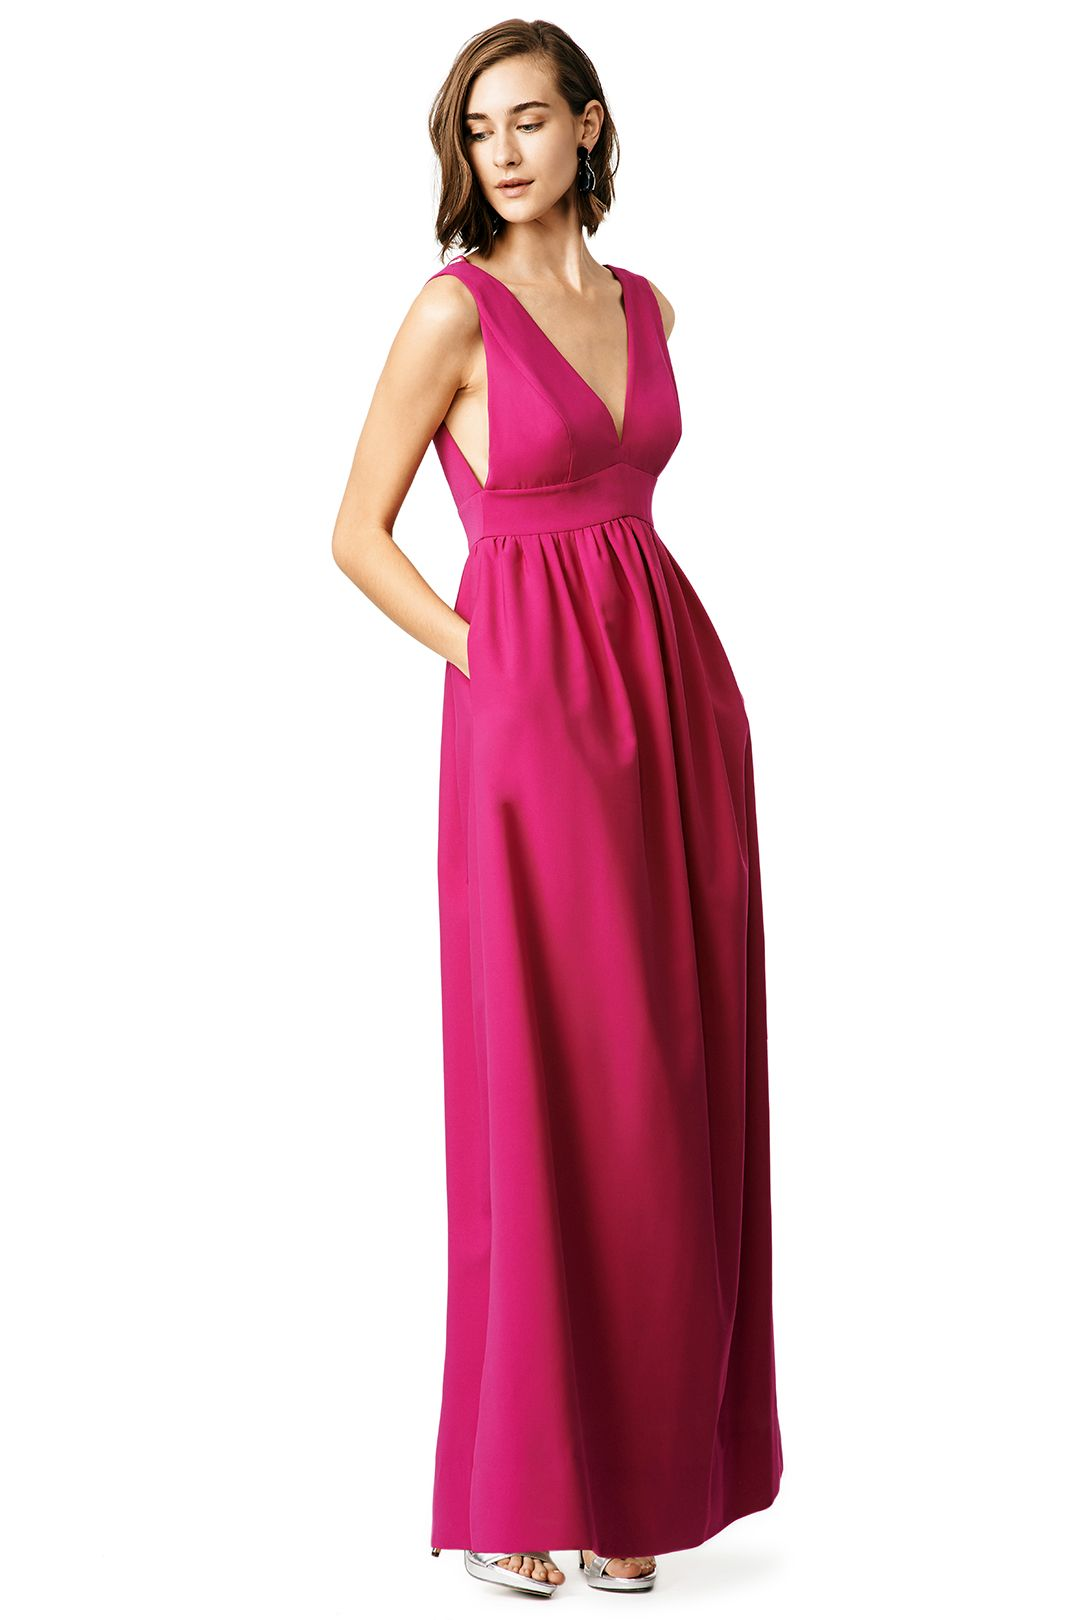 Raspberry gownu with pockets shopping pinterest gowns black